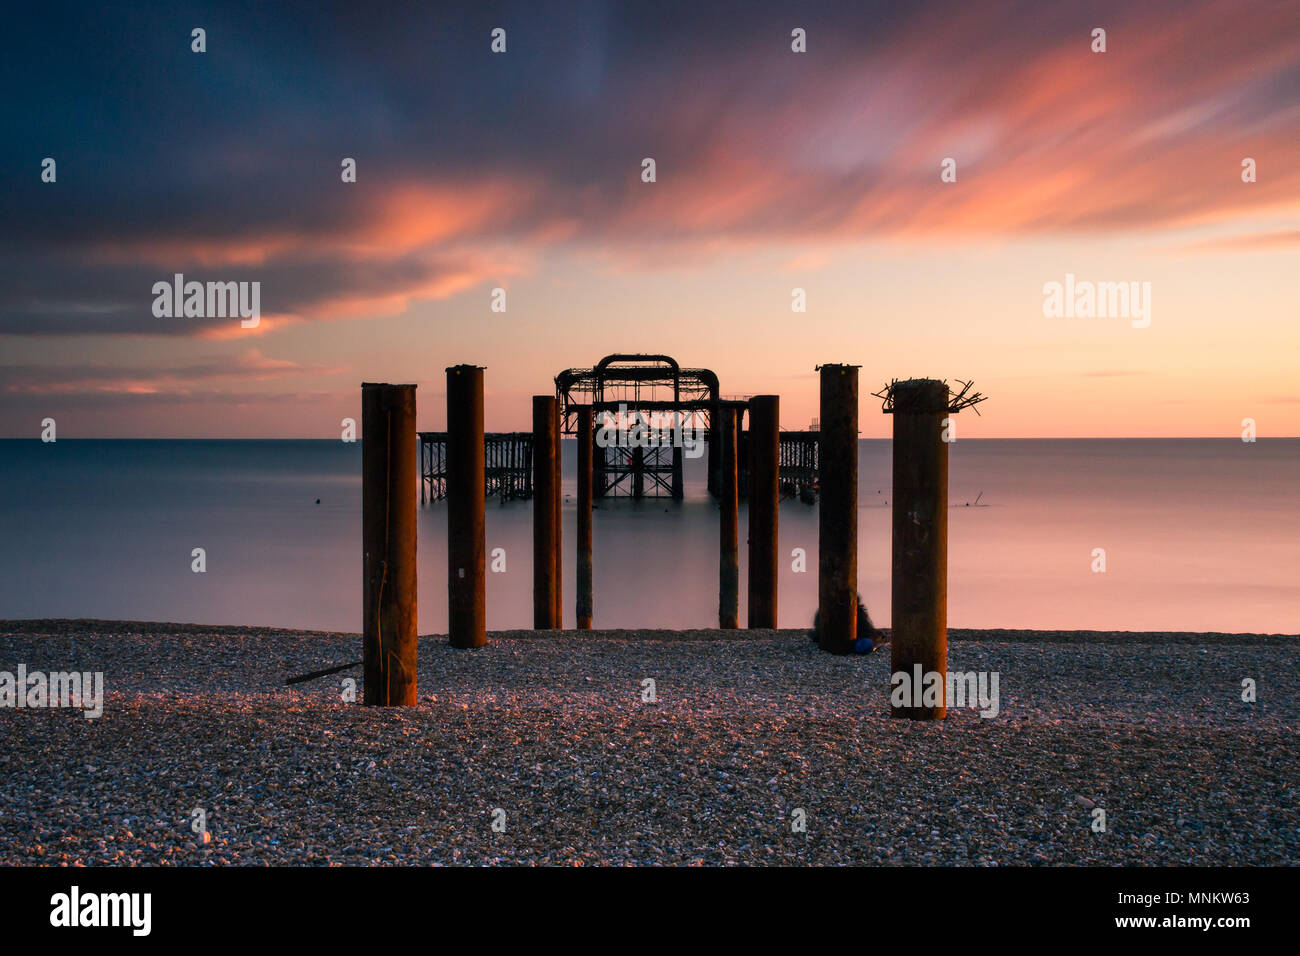 Evening warmth at the West Pier - Stock Image